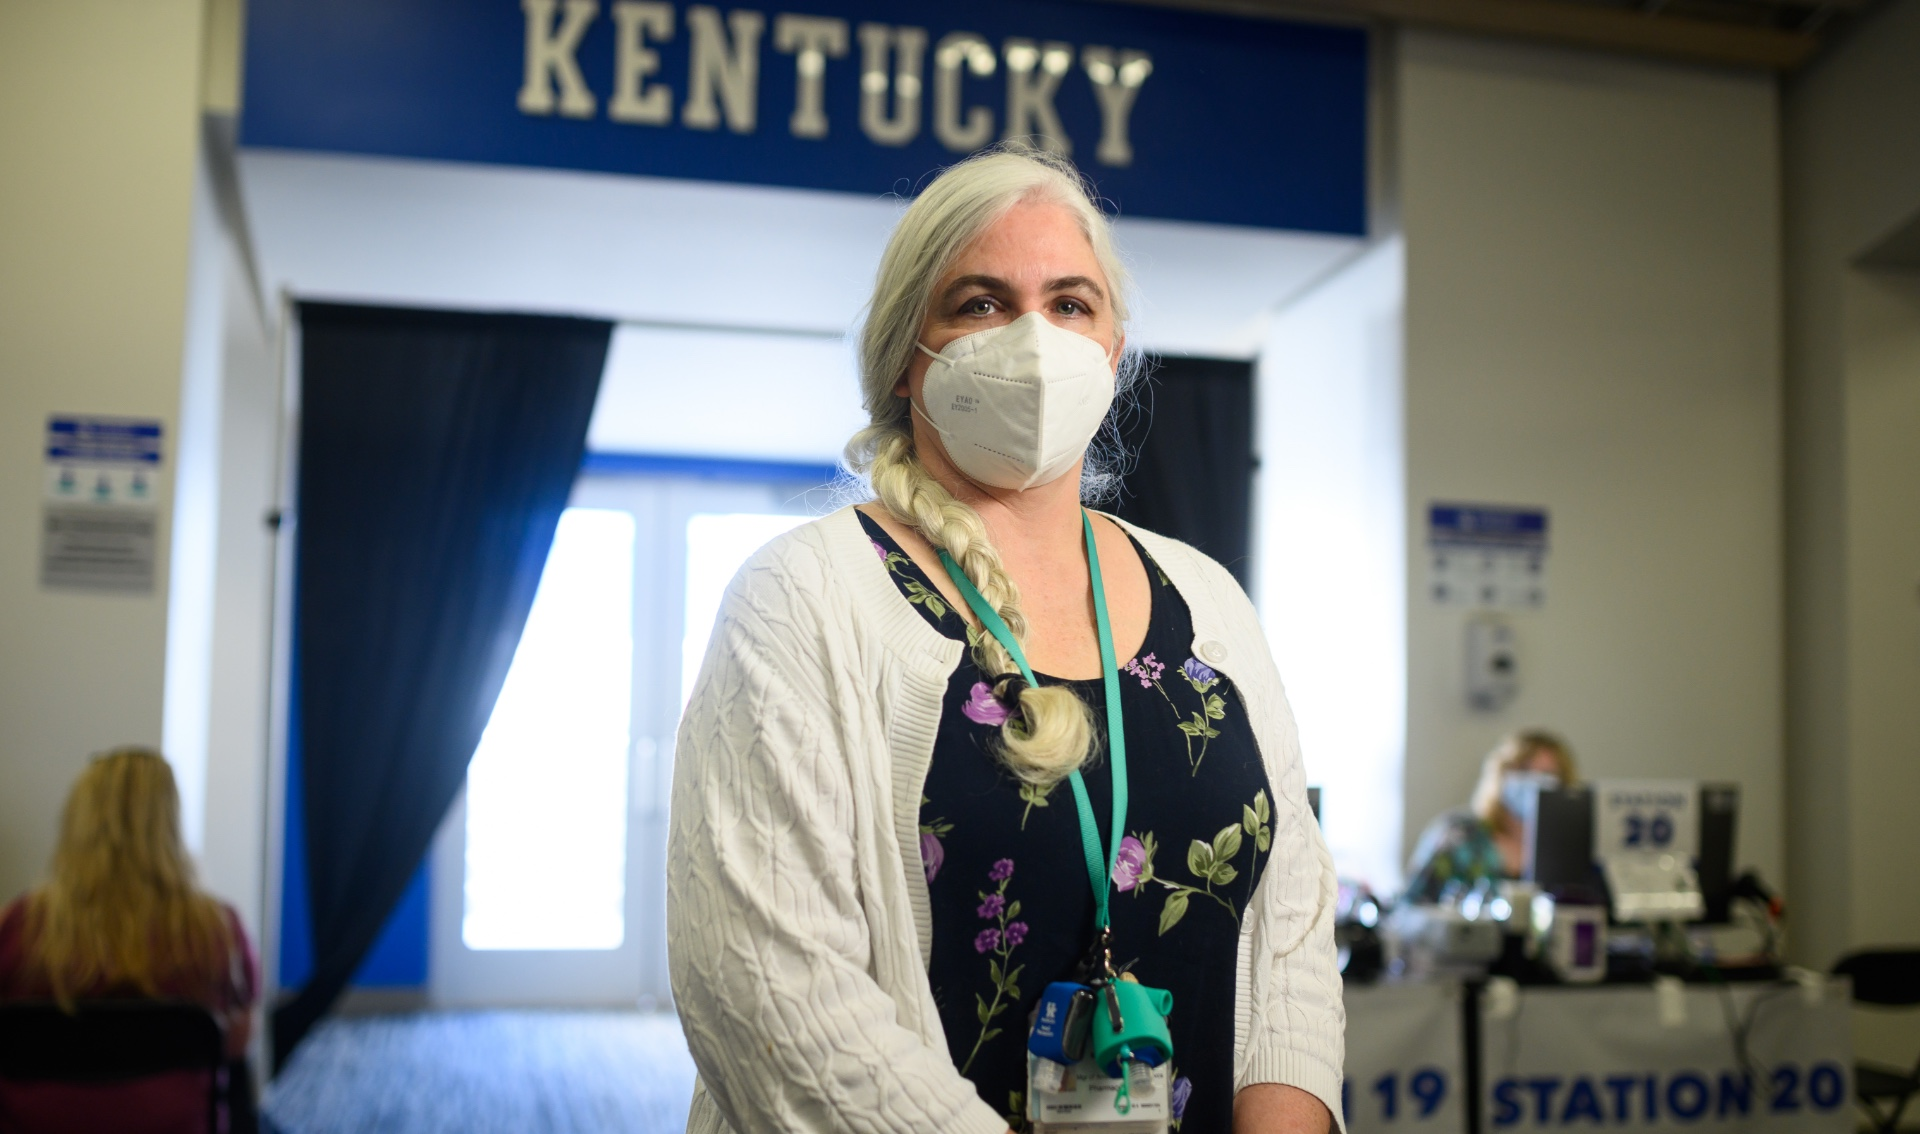 Karla Bertagnole, a middle-aged woman with long white hair in a single braid, stands inside the Kroger Field stadium. She is wearing a white facemask, a navy dress with floral designs, and a white cardigan.